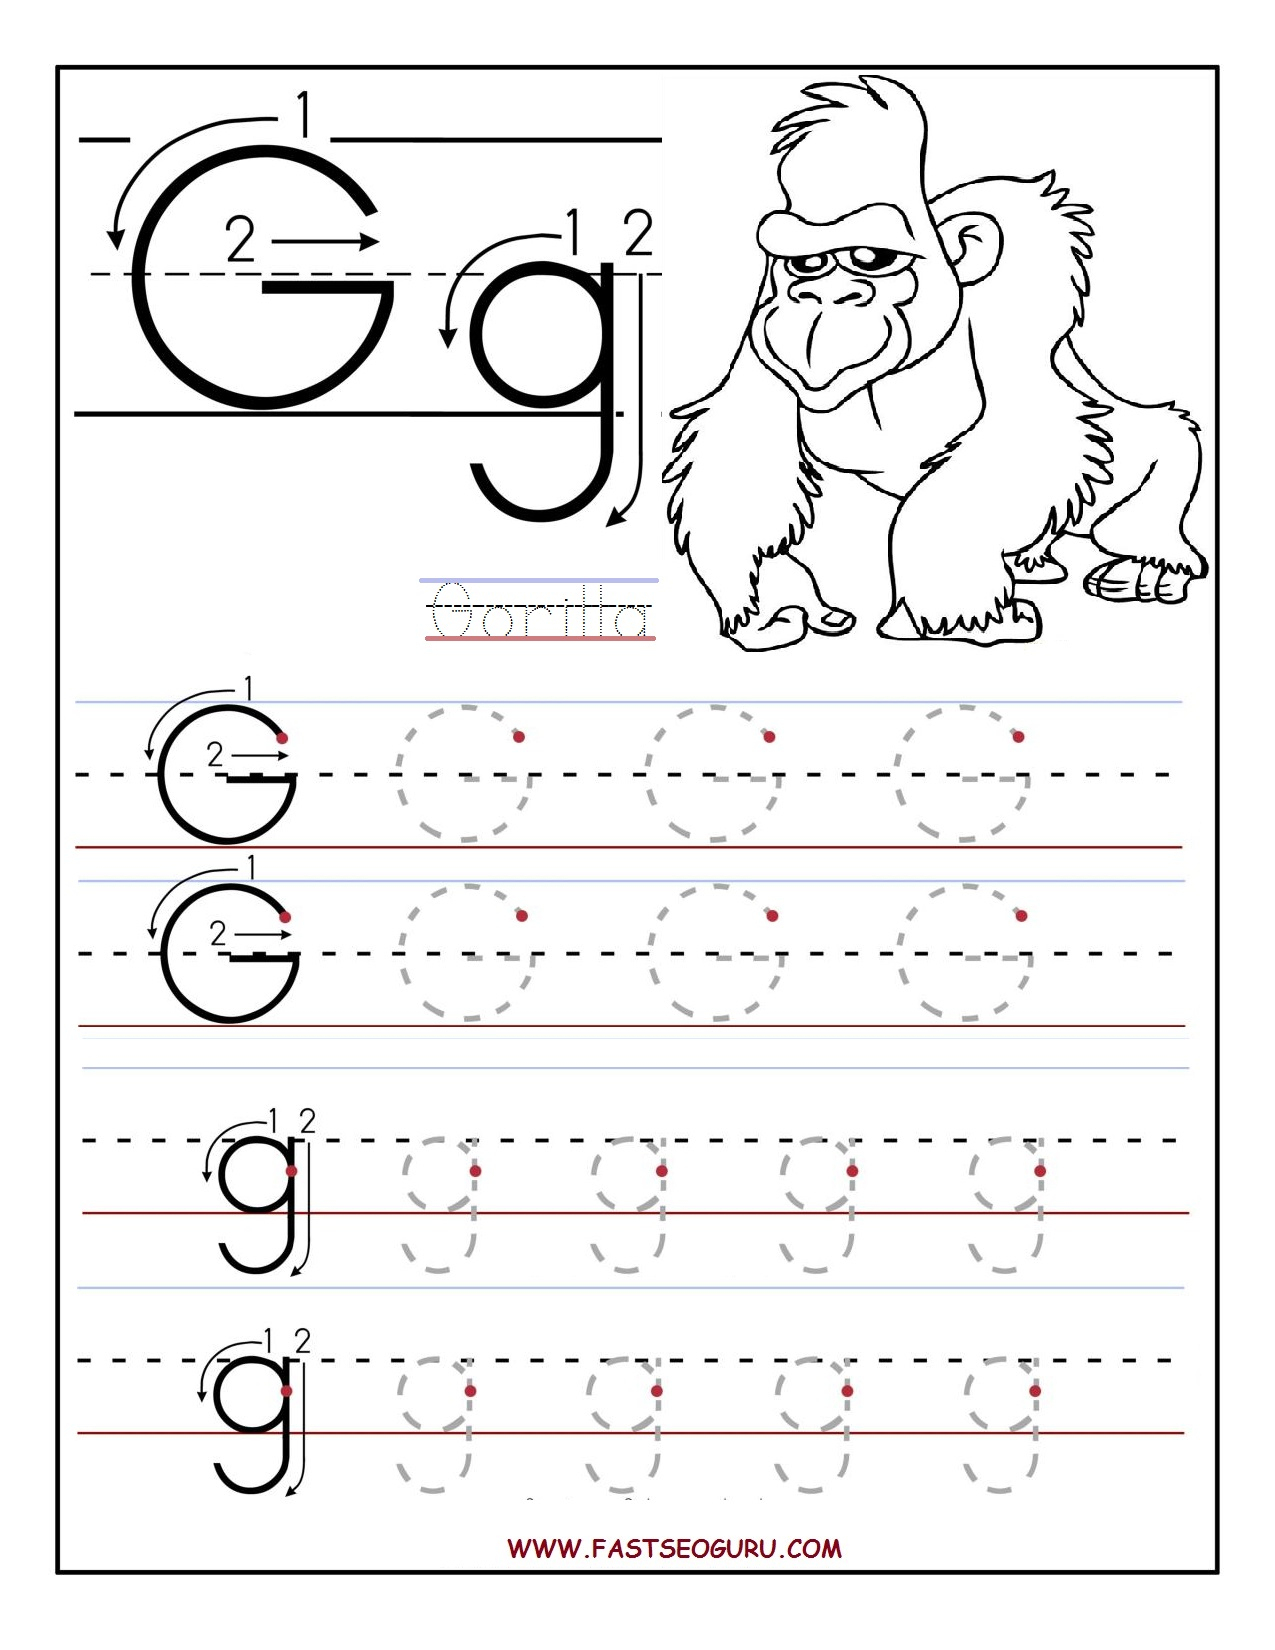 Letter G Worksheets | Gplusnick | Letter G Printable Worksheets